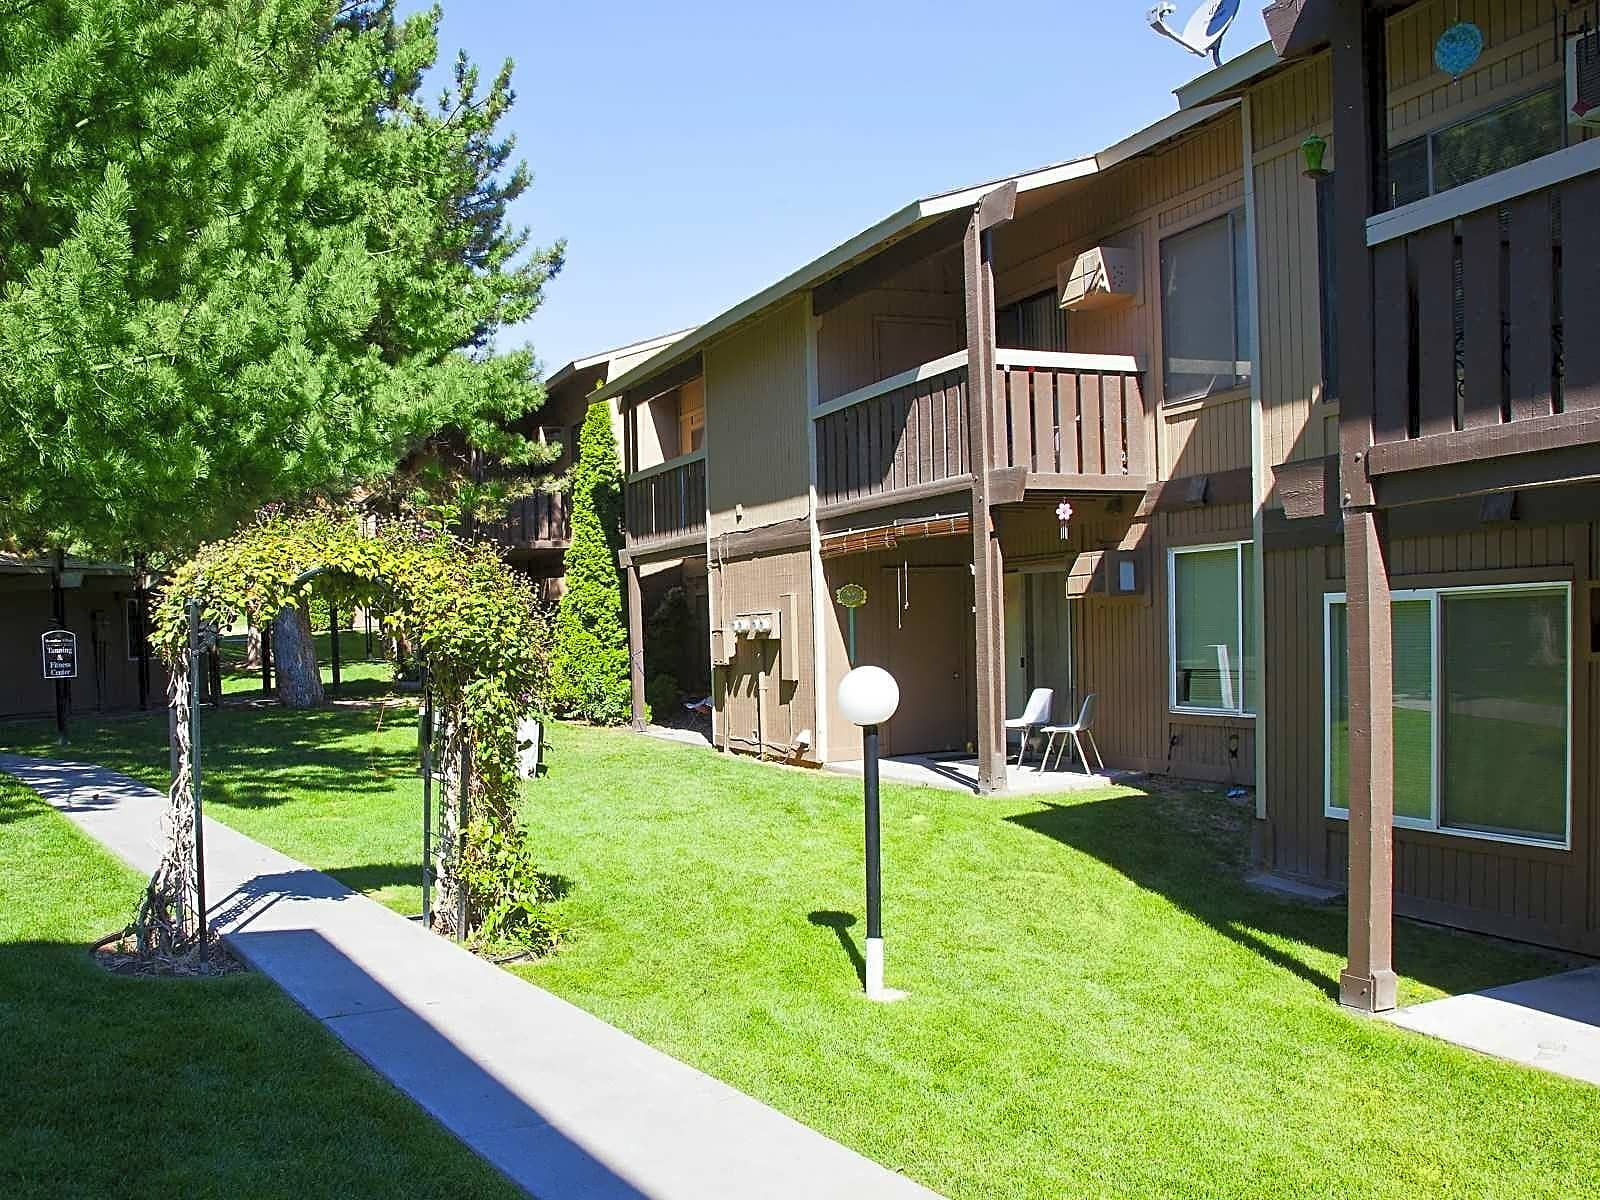 Photo: Kennewick Apartment for Rent - $625.00 / month; 1 Bd & 1 Ba